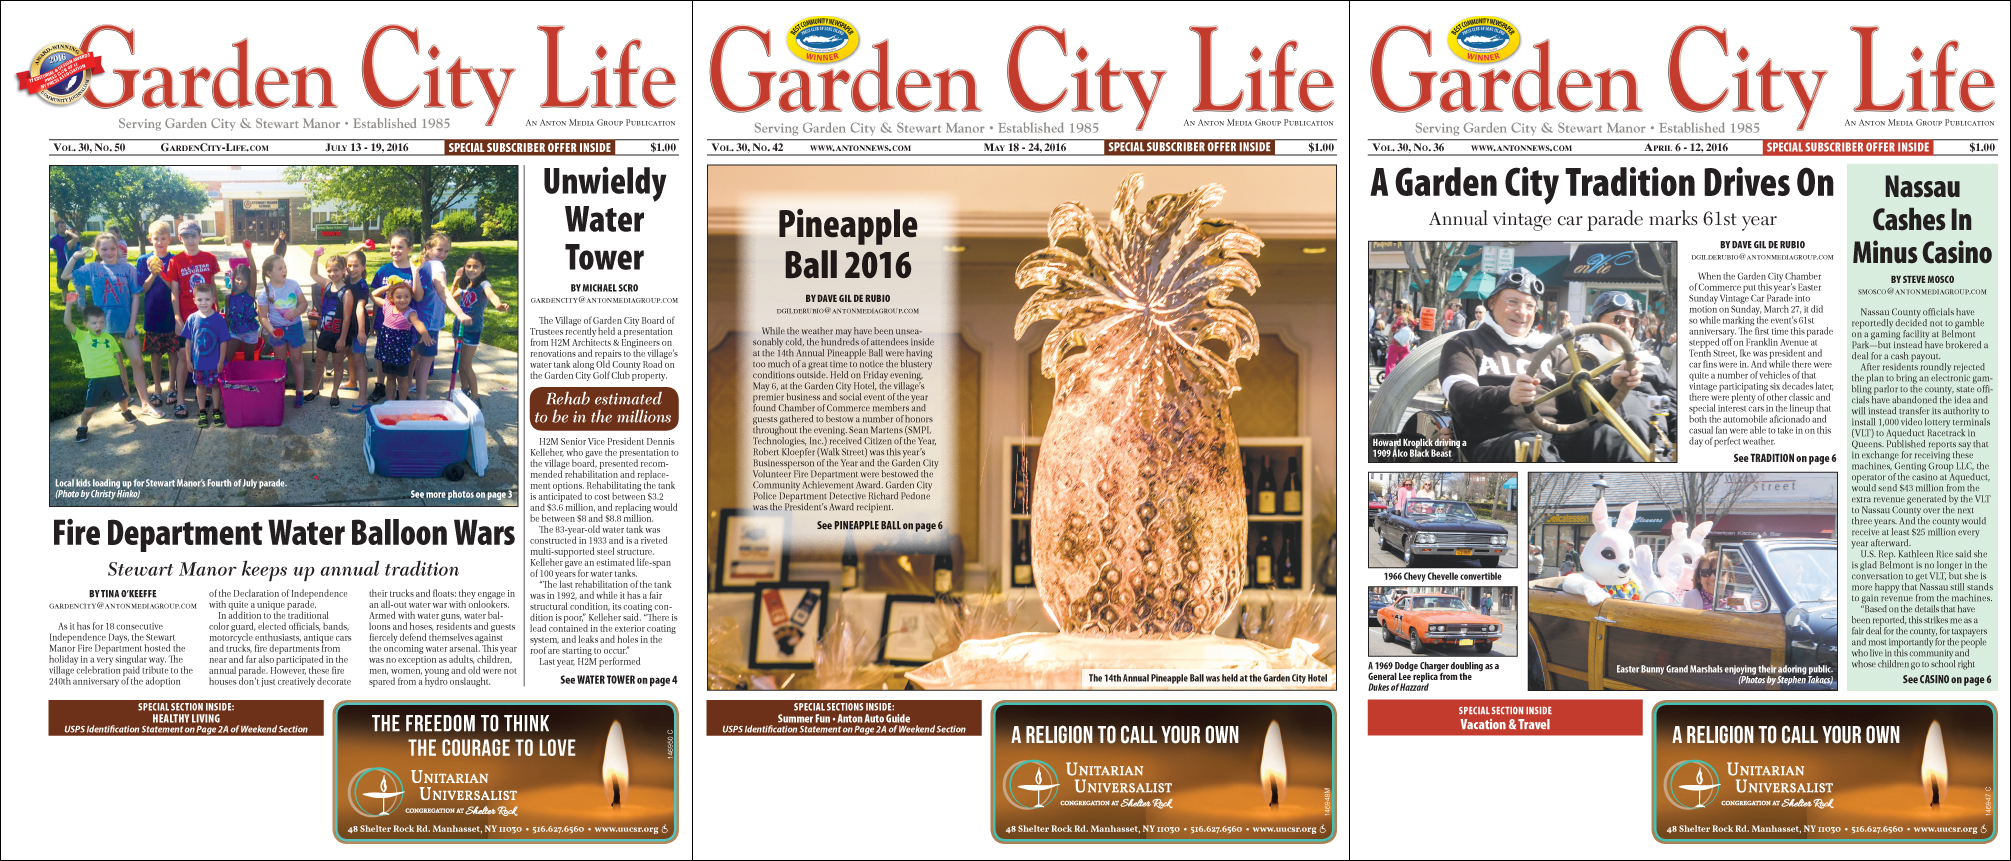 Garden City Life Acknowledged For Cover Design At Nypa Garden City Life